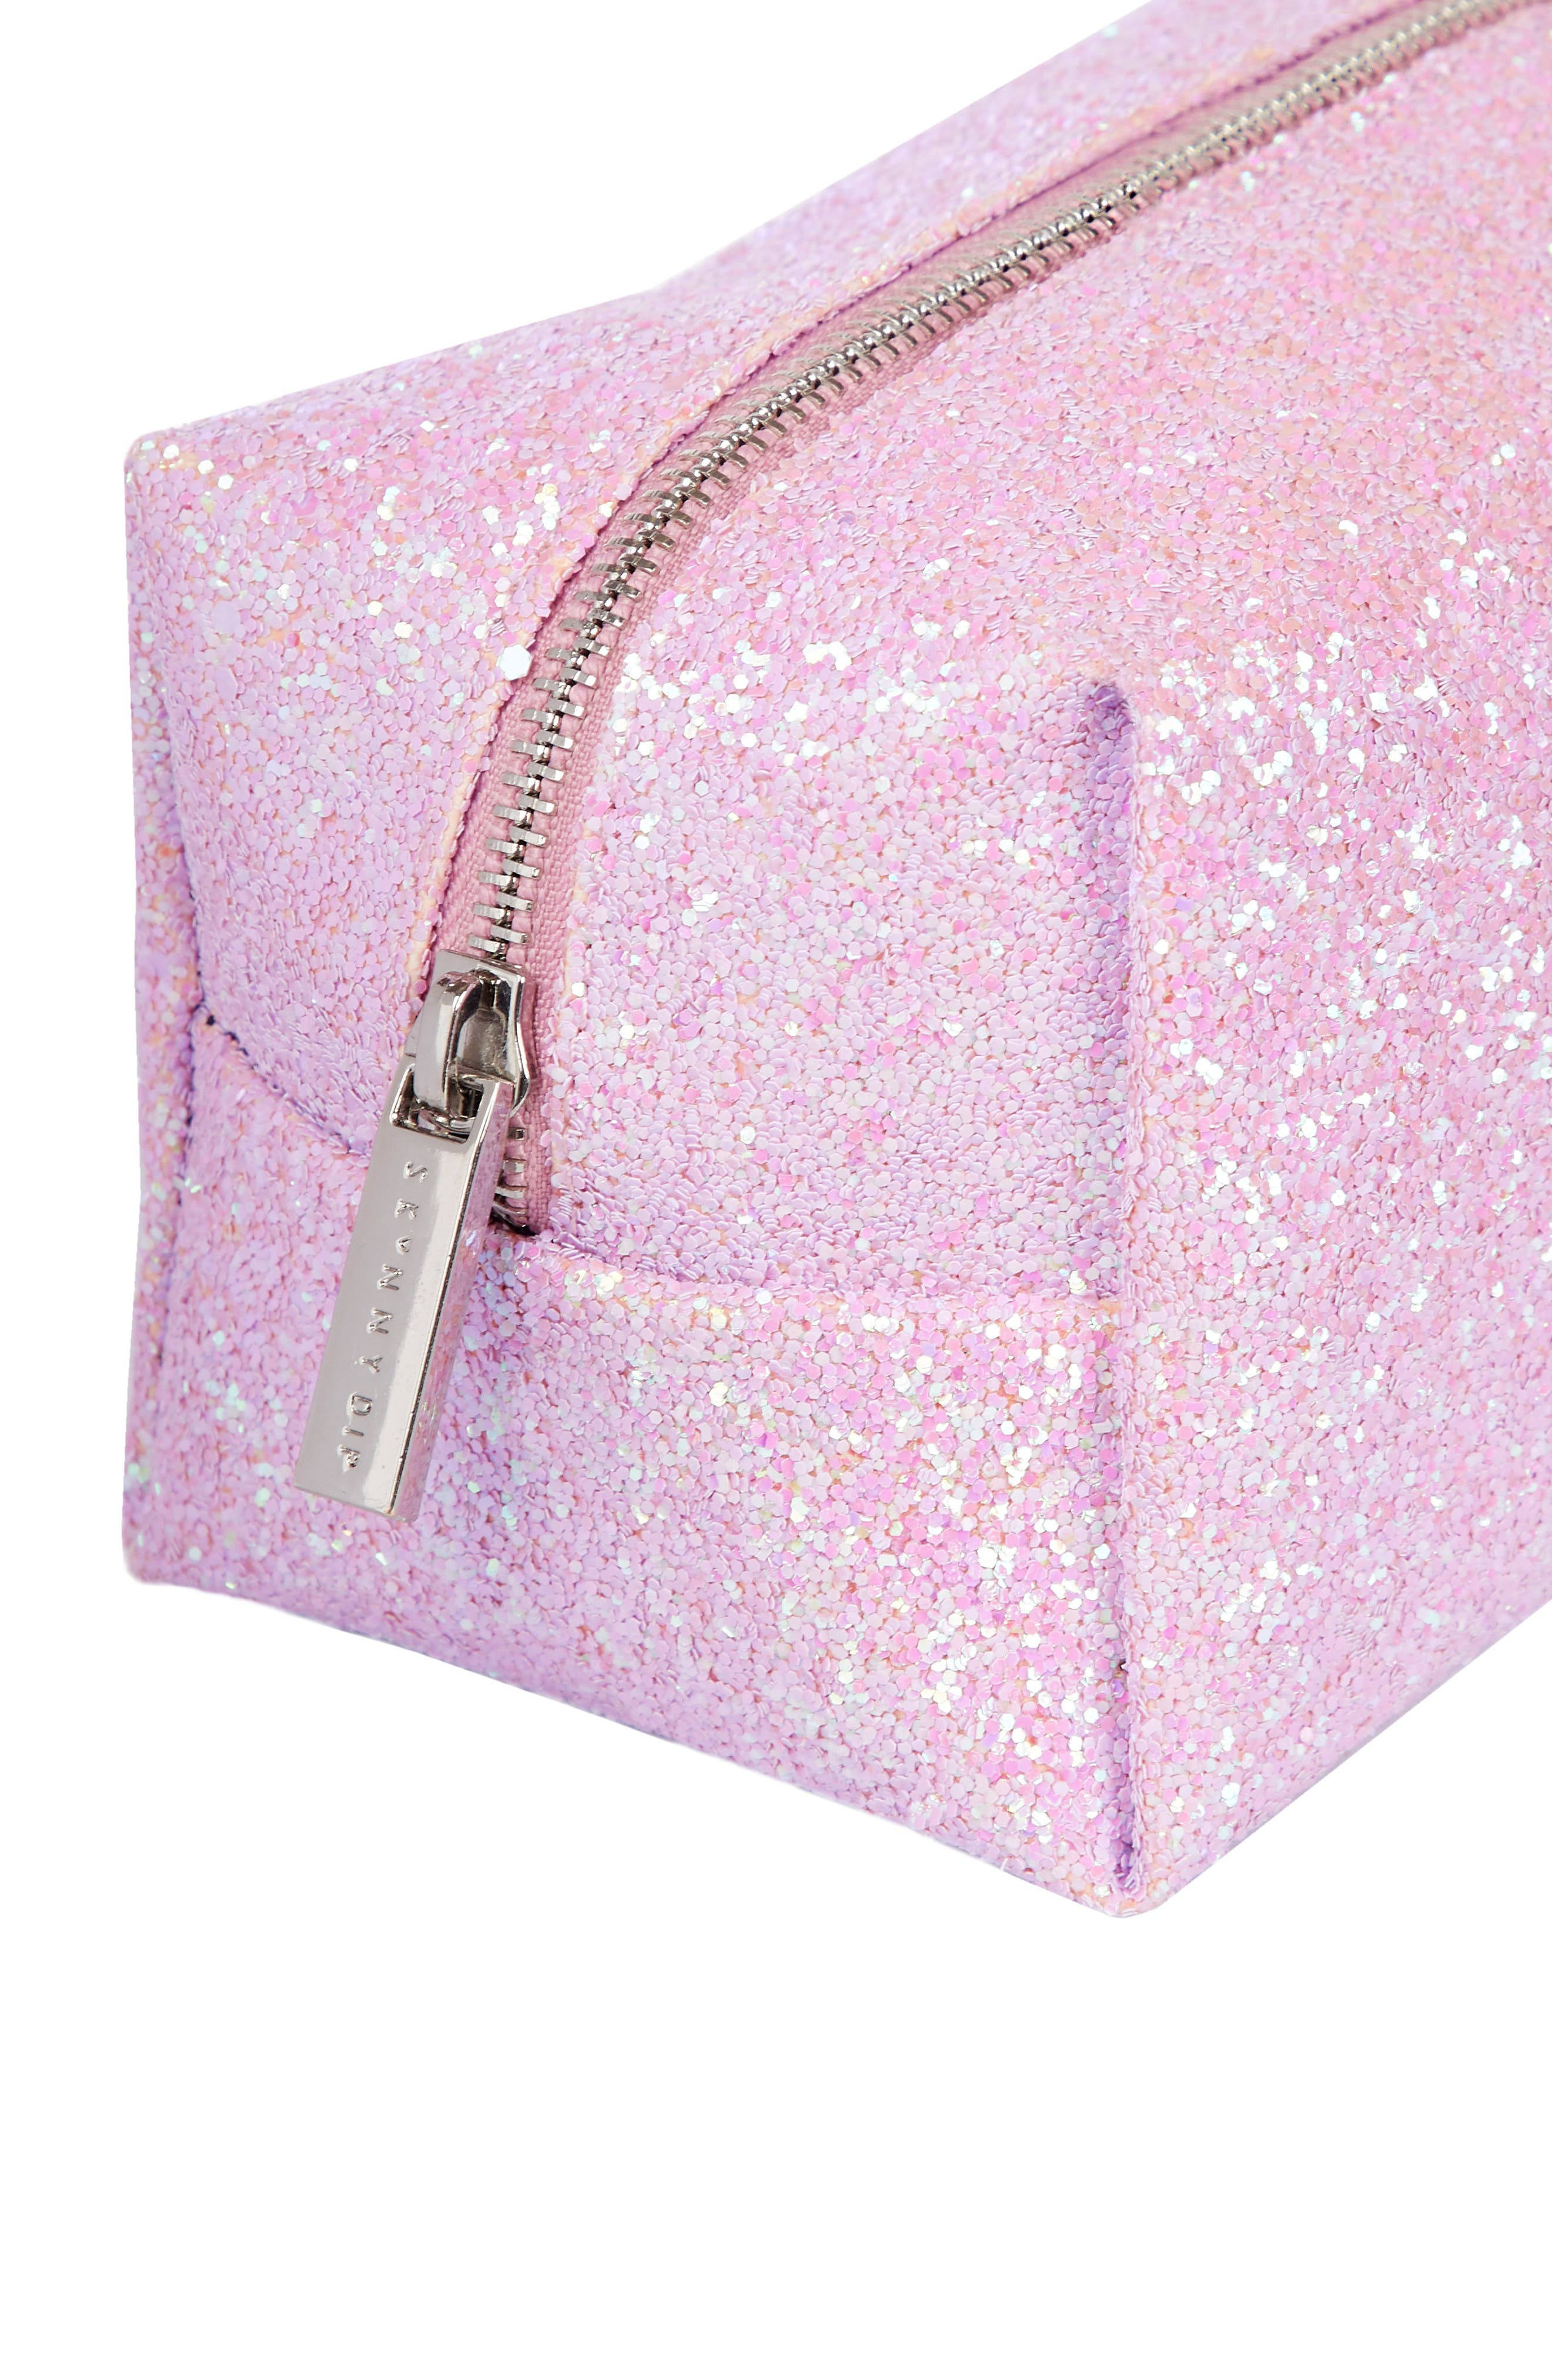 Skinny Dip Pink Glitsy Cosmetics Case,                             Alternate thumbnail 4, color,                             No Color